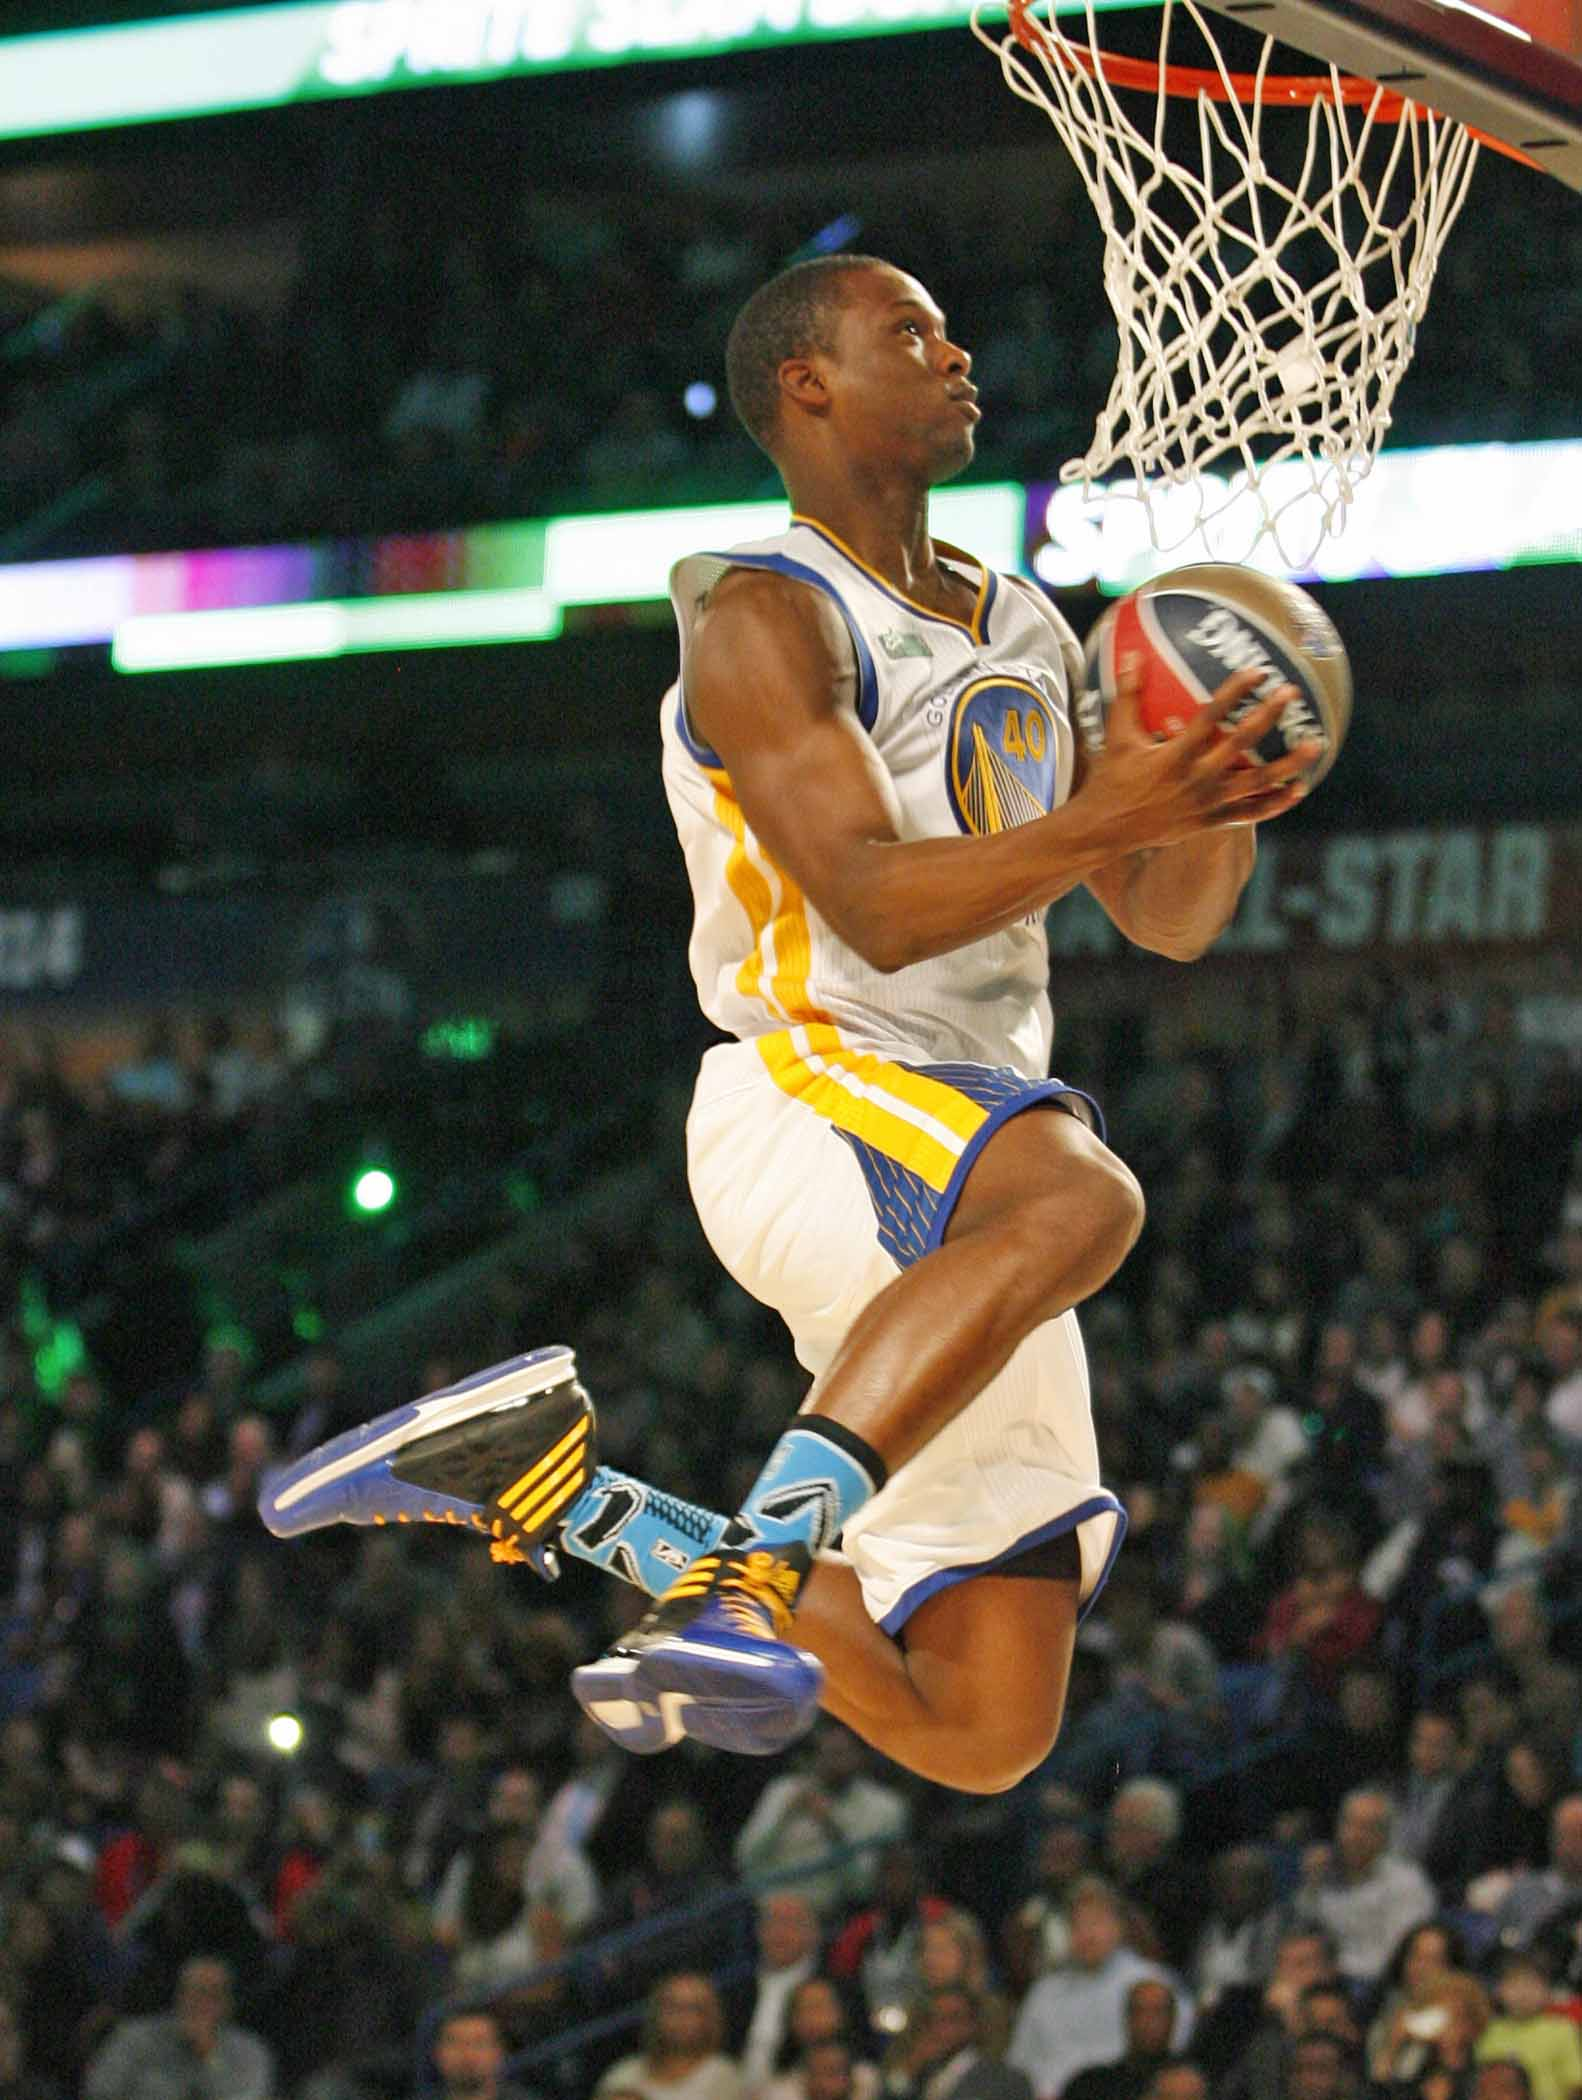 Harrison Barnes - NBA Slam Dunk